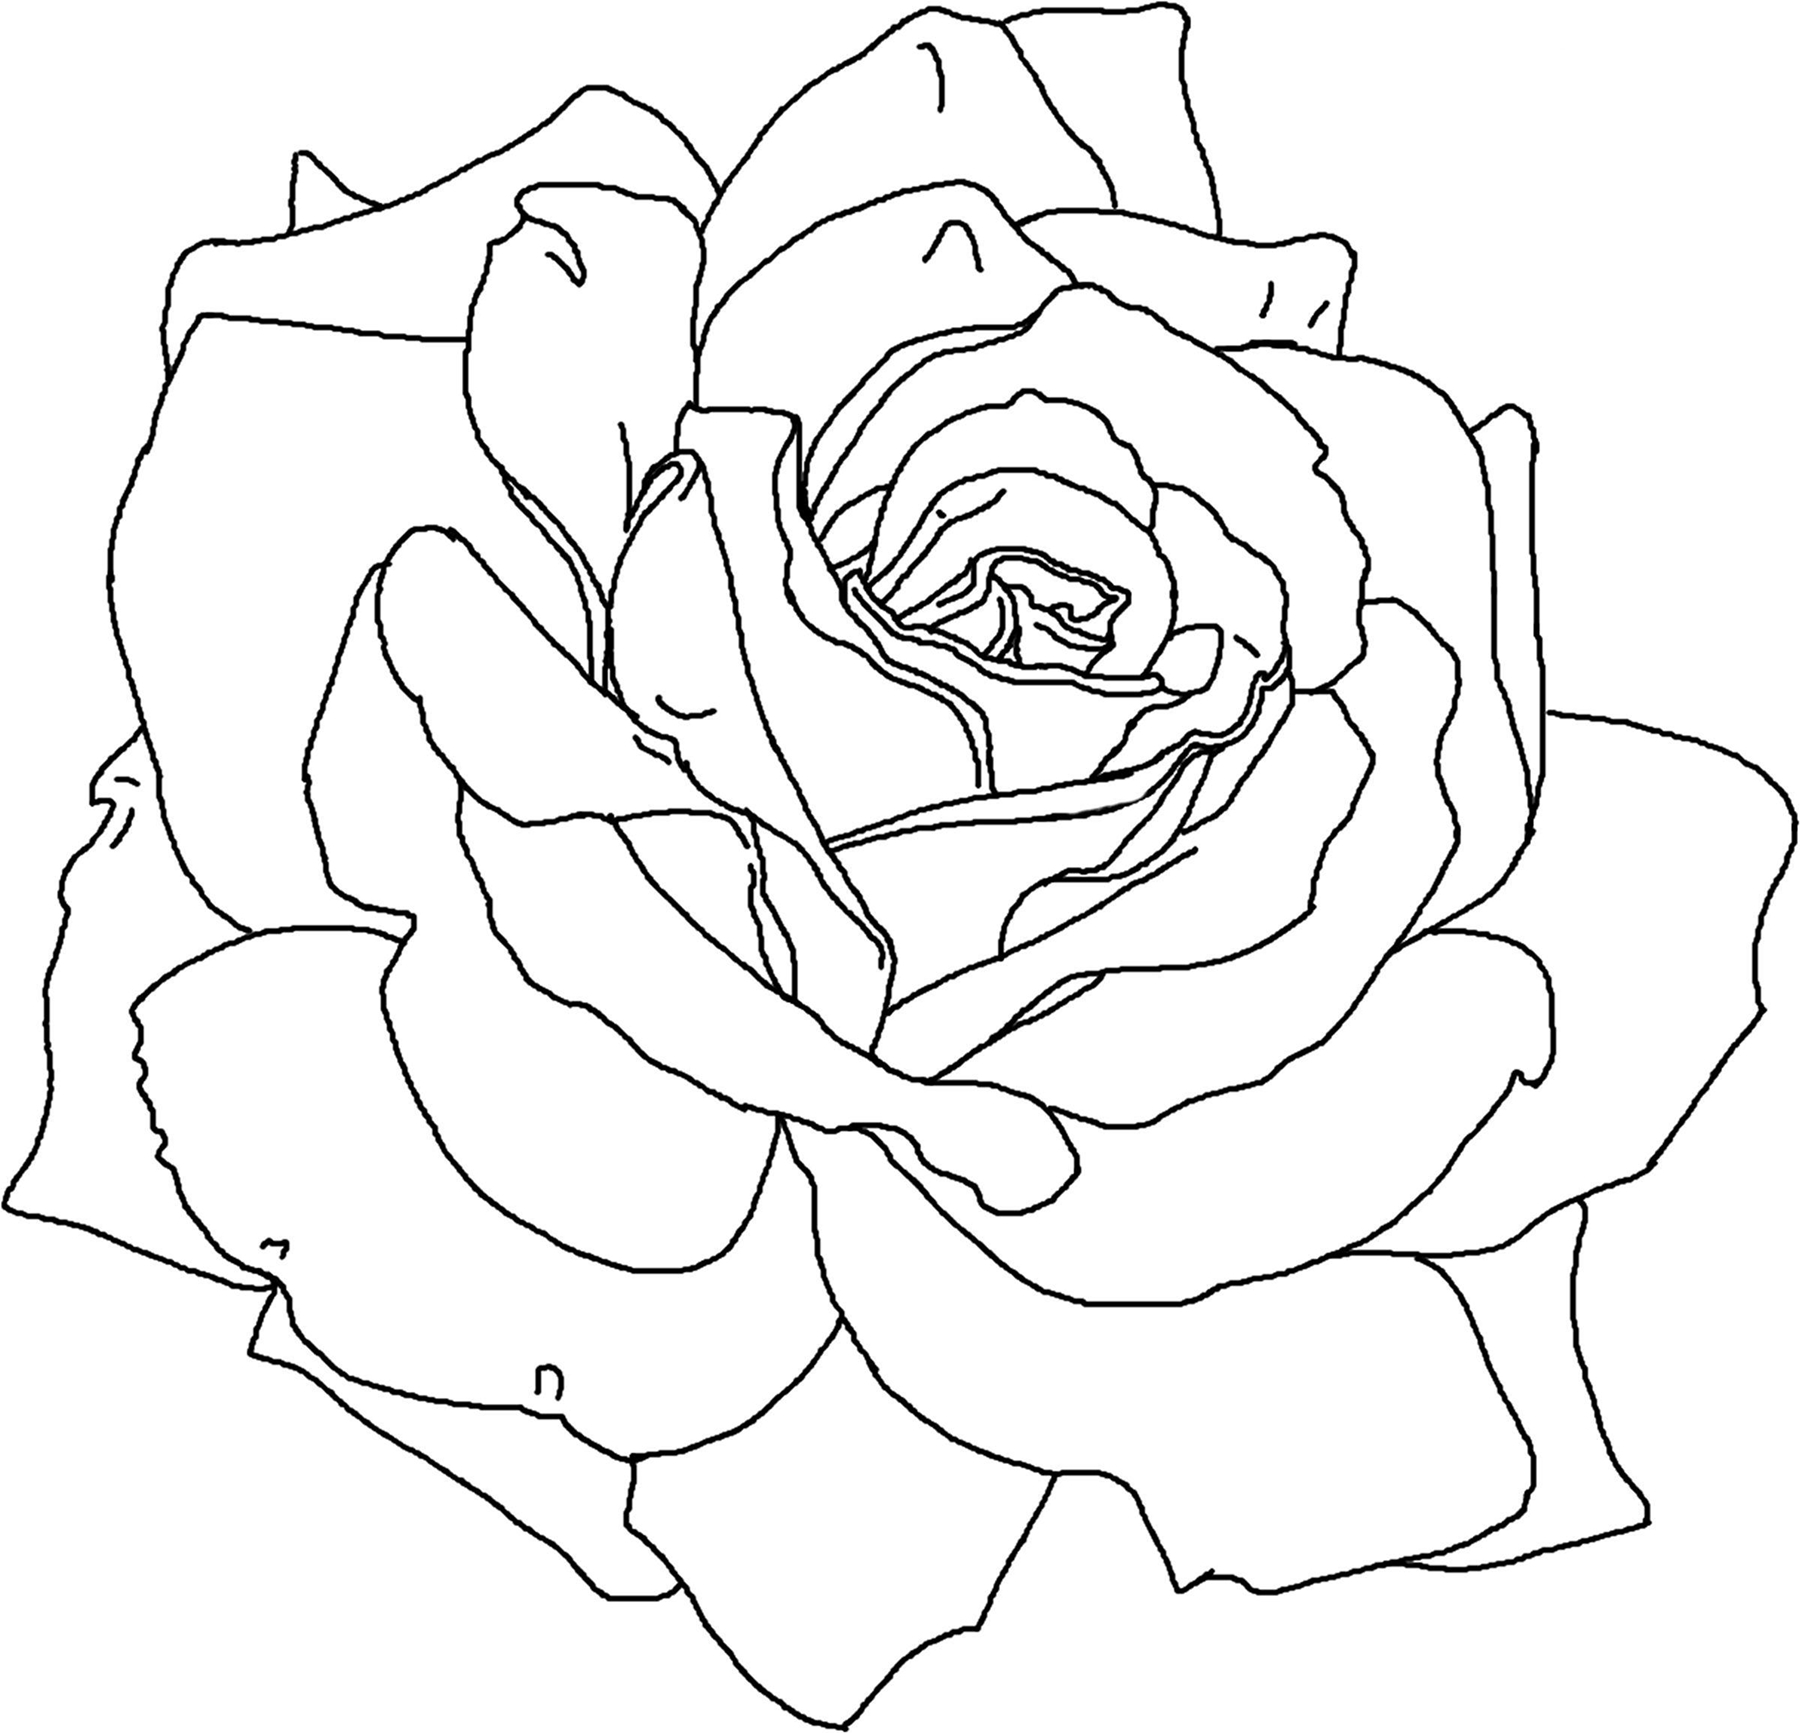 Free Printable Flower Coloring Pages For Kids Best Coloring Pages Of A Flower